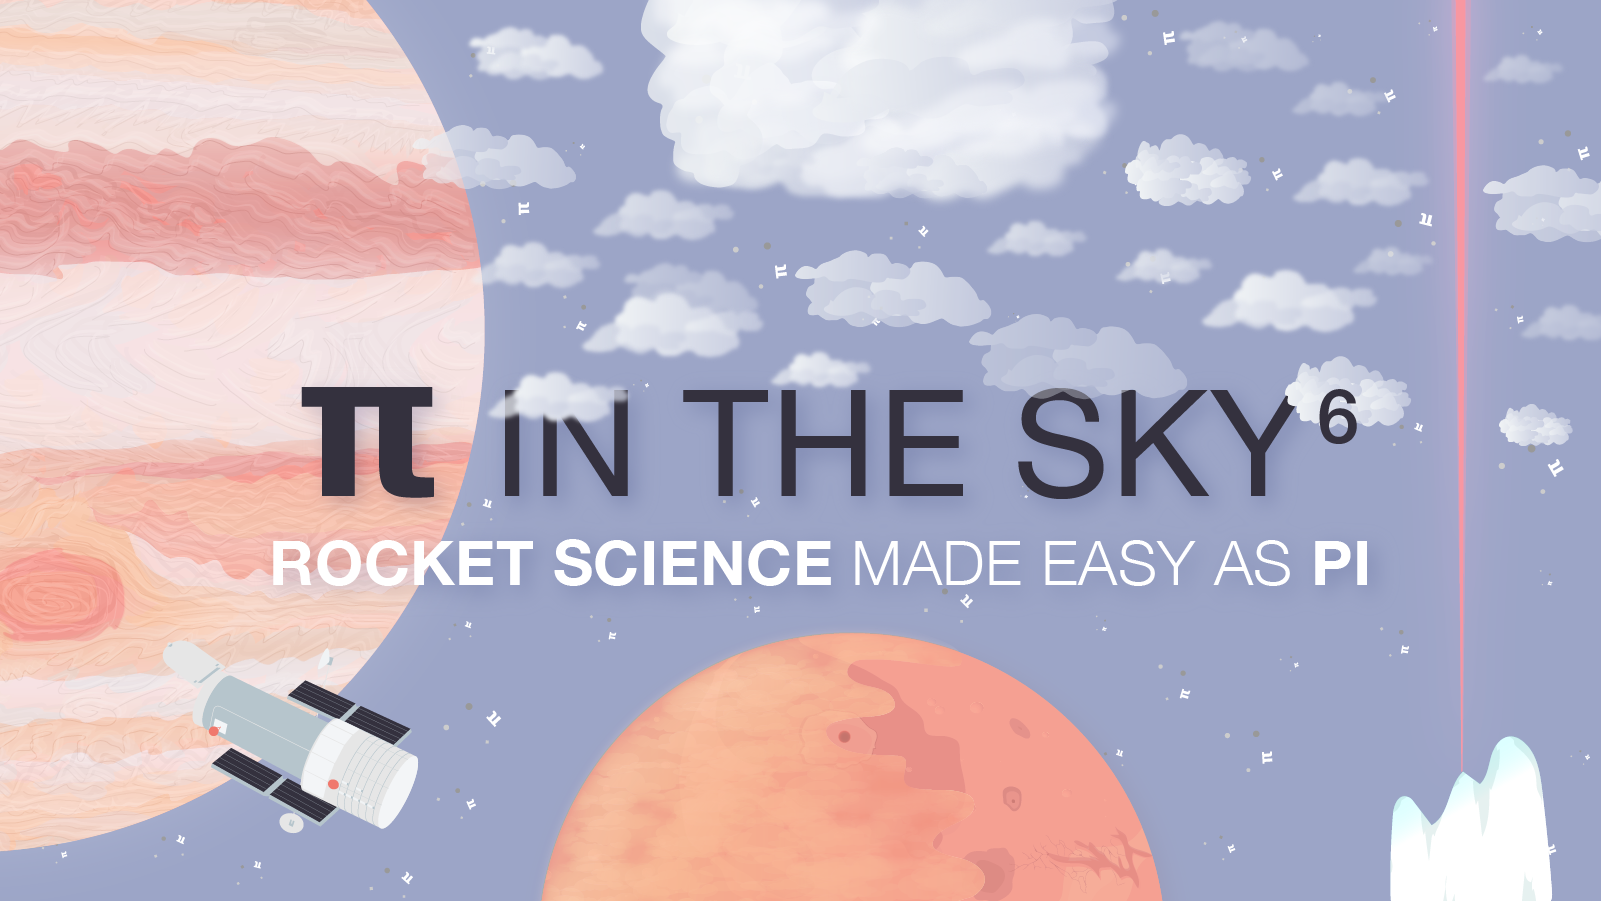 Whimsical space graphic says Pi in the Sky 6: Rocket Science Made Easy as Pi